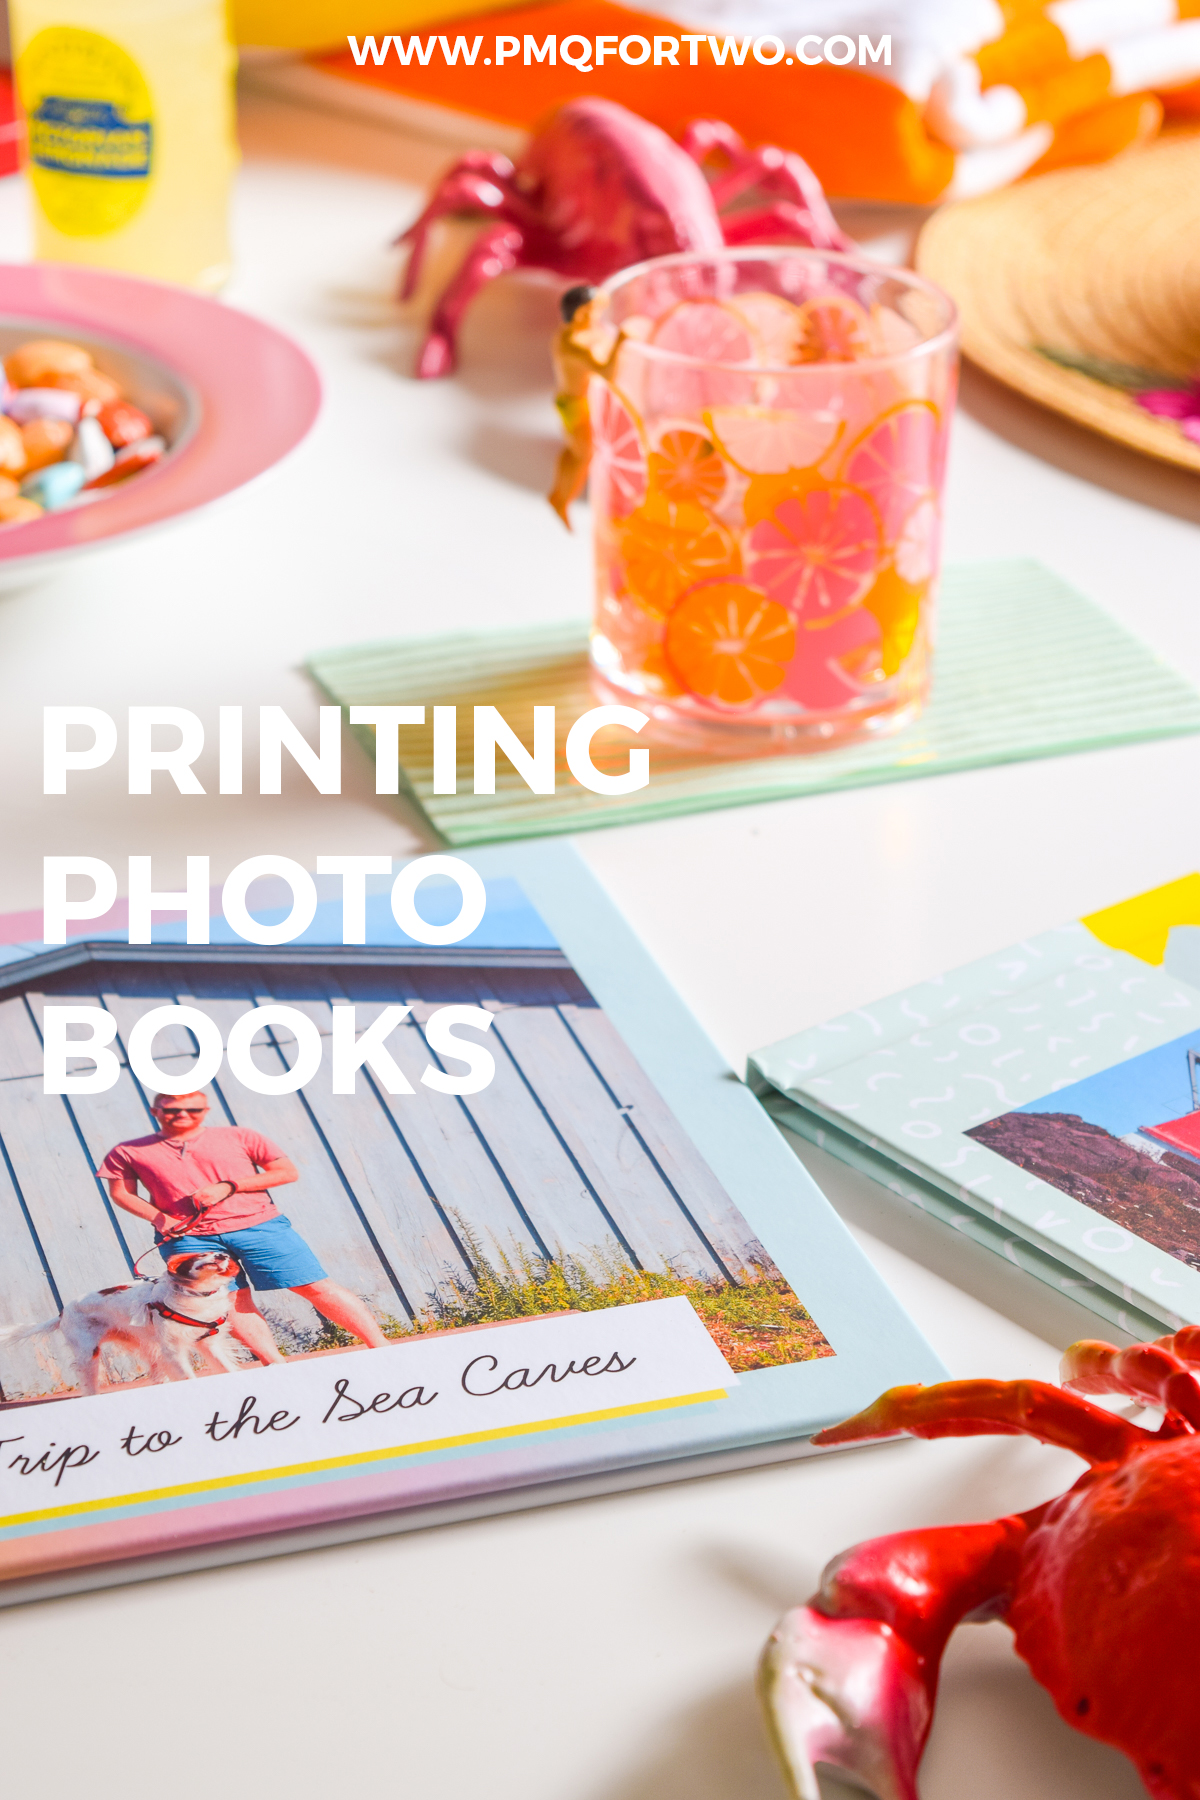 printing photo books is so retro, it's in! I used Mixbook to print out collections from our summer travels last year, and couldn't be happier with the results!